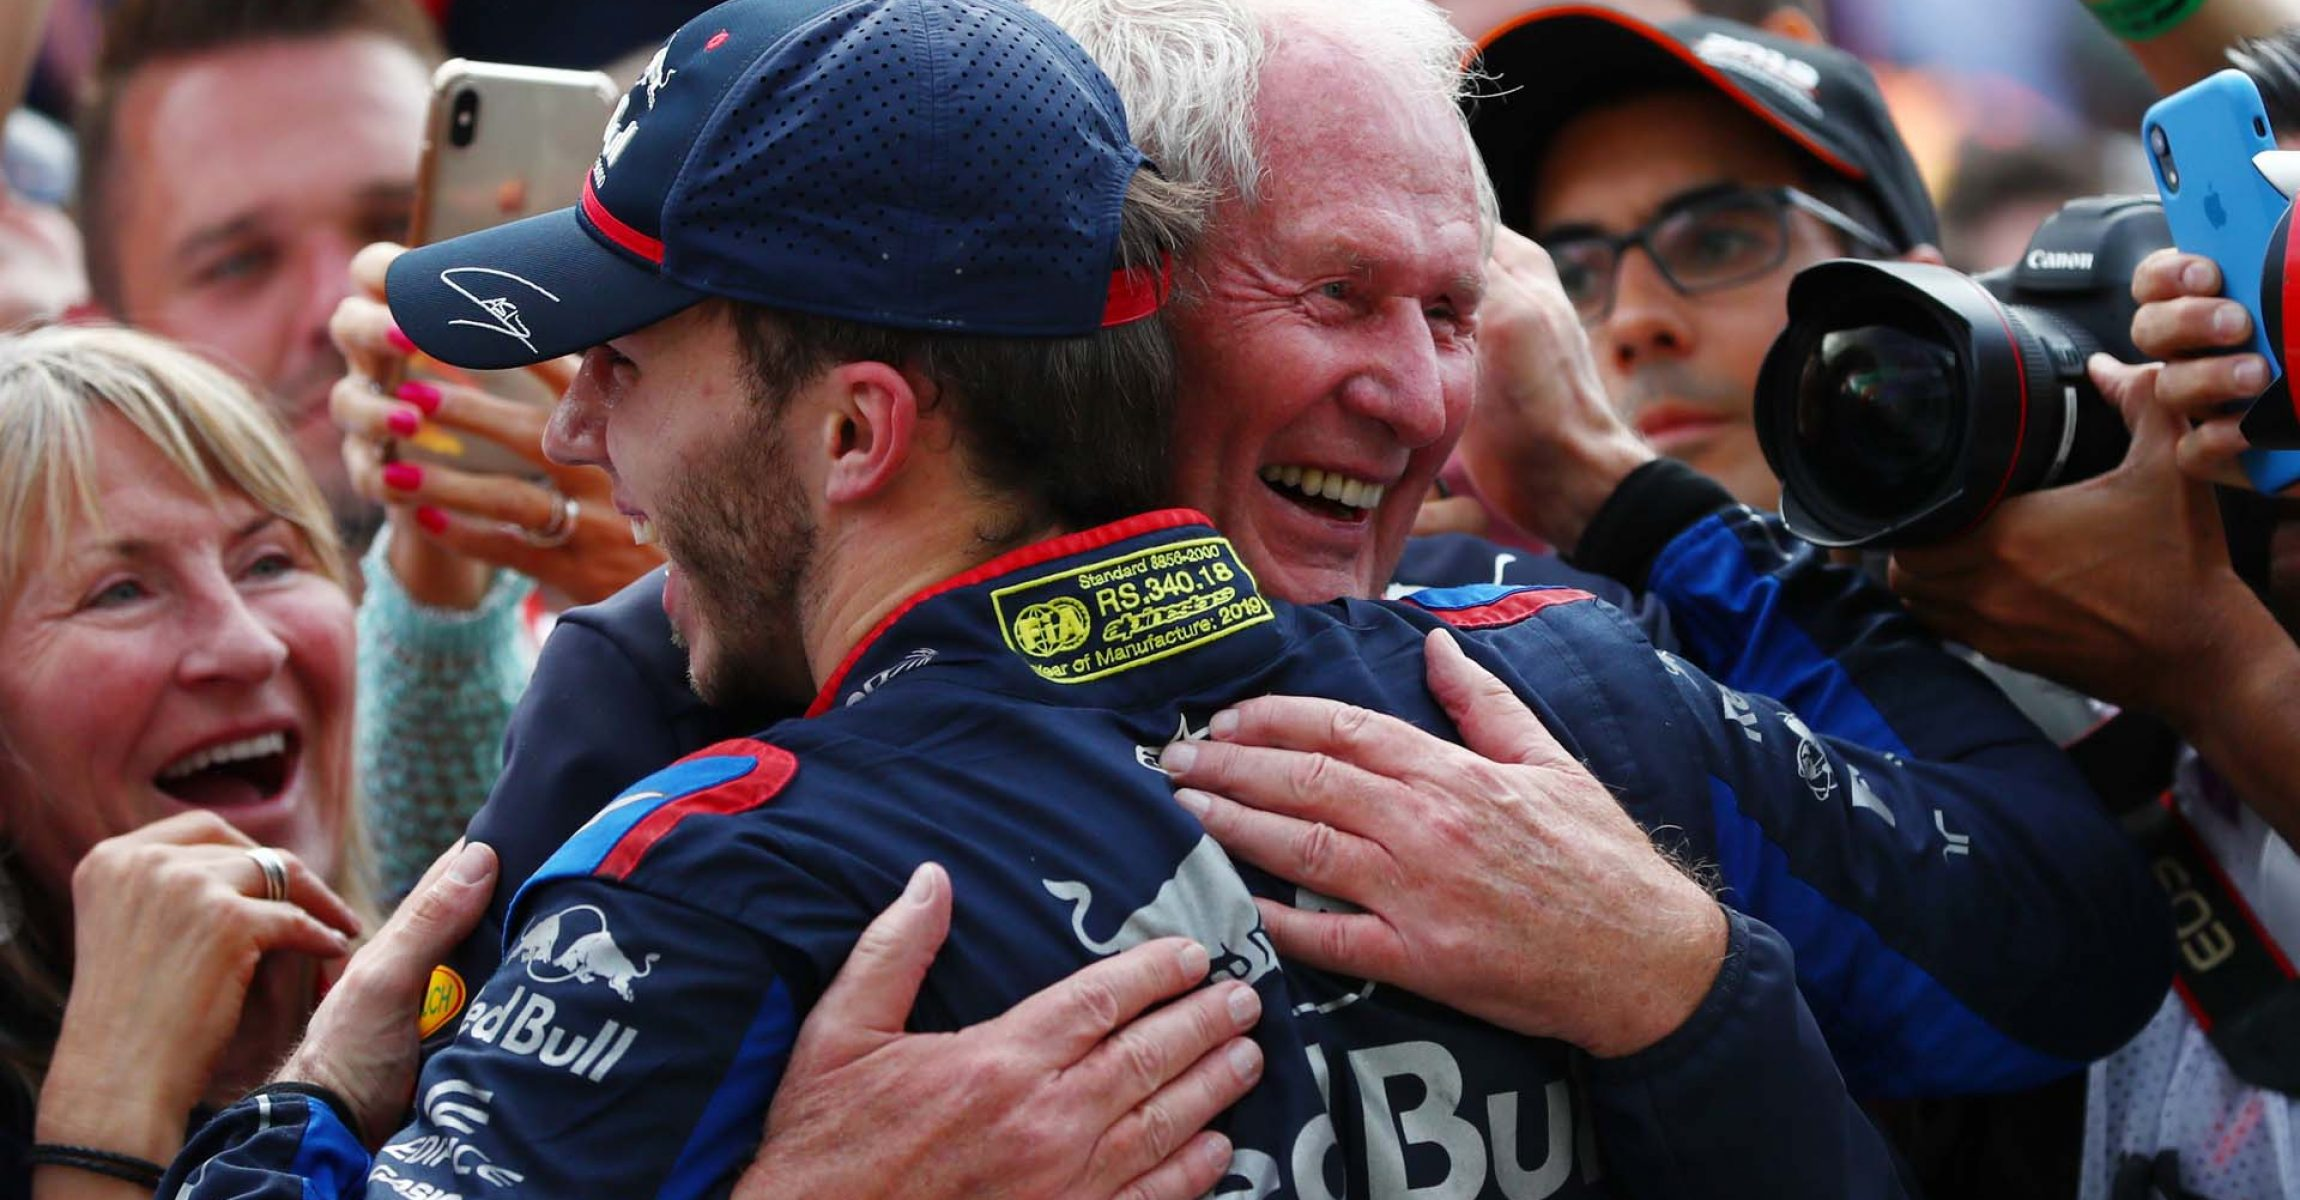 SAO PAULO, BRAZIL - NOVEMBER 17: Second placed Pierre Gasly of France and Scuderia Toro Rosso celebrates in parc ferme with Red Bull Racing Team Consultant Dr Helmut Marko during the F1 Grand Prix of Brazil at Autodromo Jose Carlos Pace on November 17, 2019 in Sao Paulo, Brazil. (Photo by Dan Istitene/Getty Images) // Getty Images / Red Bull Content Pool // AP-227E72TGS2111 // Usage for editorial use only //